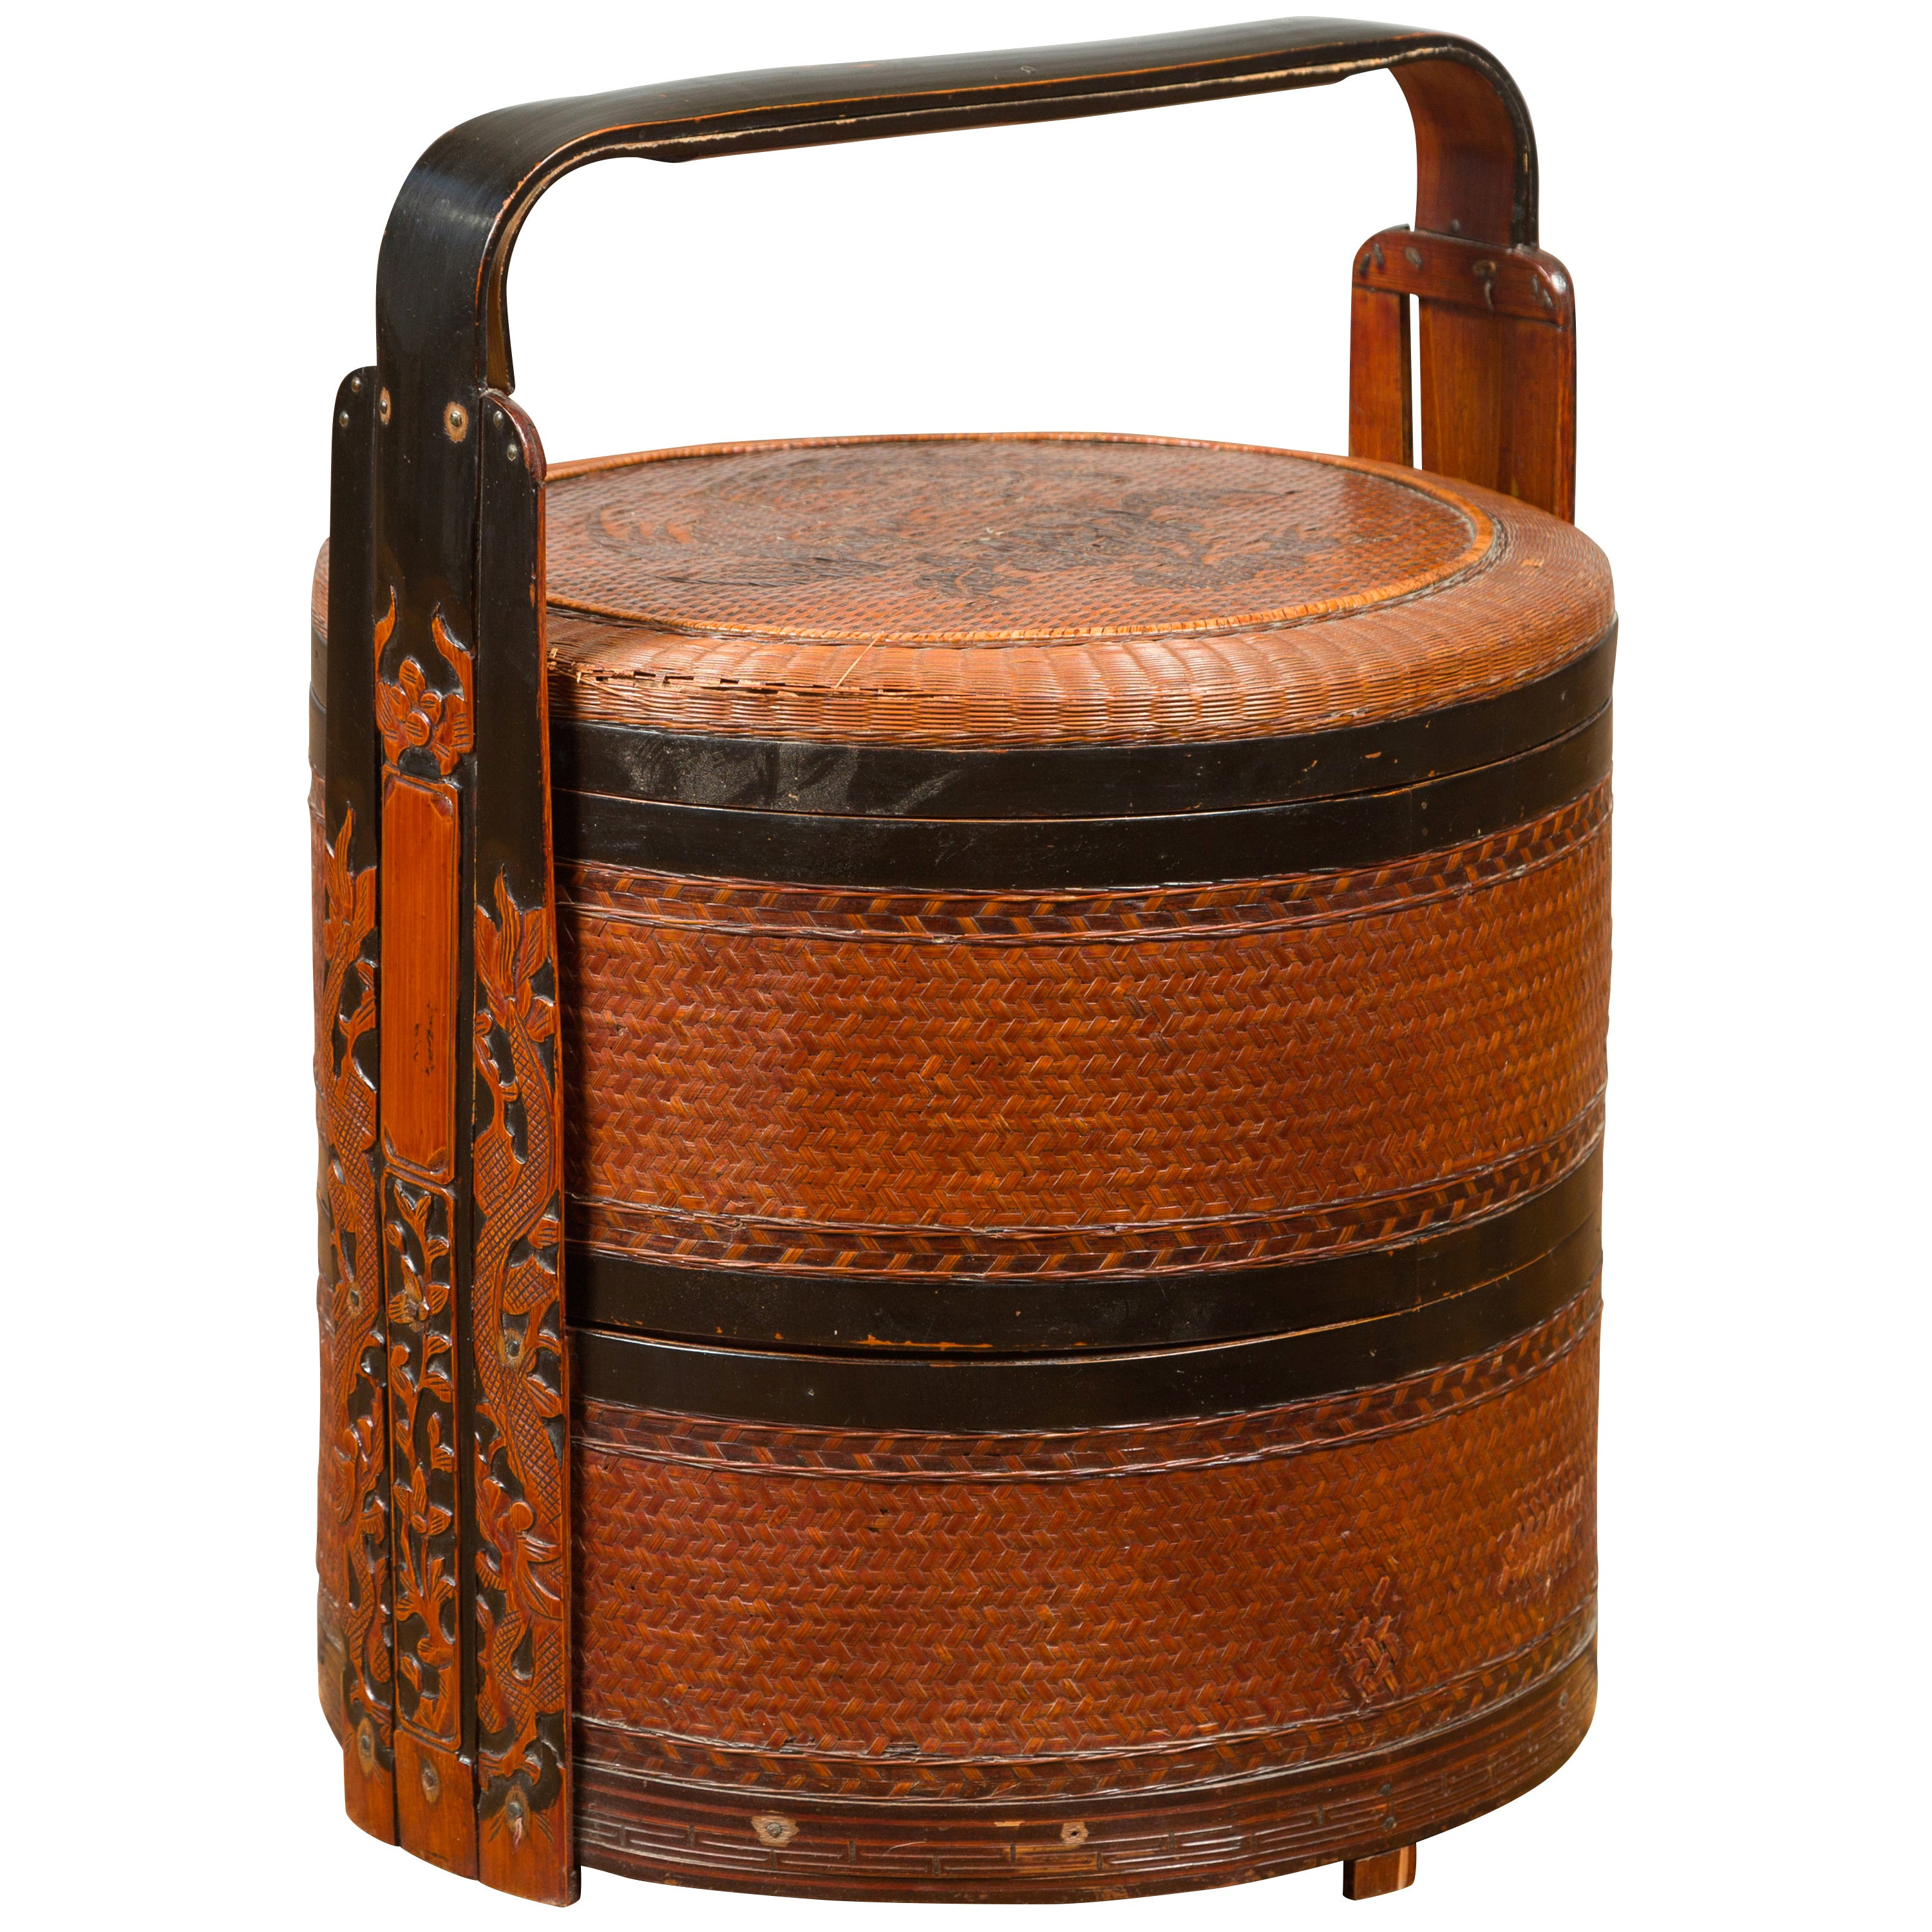 Vintage Chinese Rattan and Bamboo Nested Lunch Basket with Foliage Carved Handle